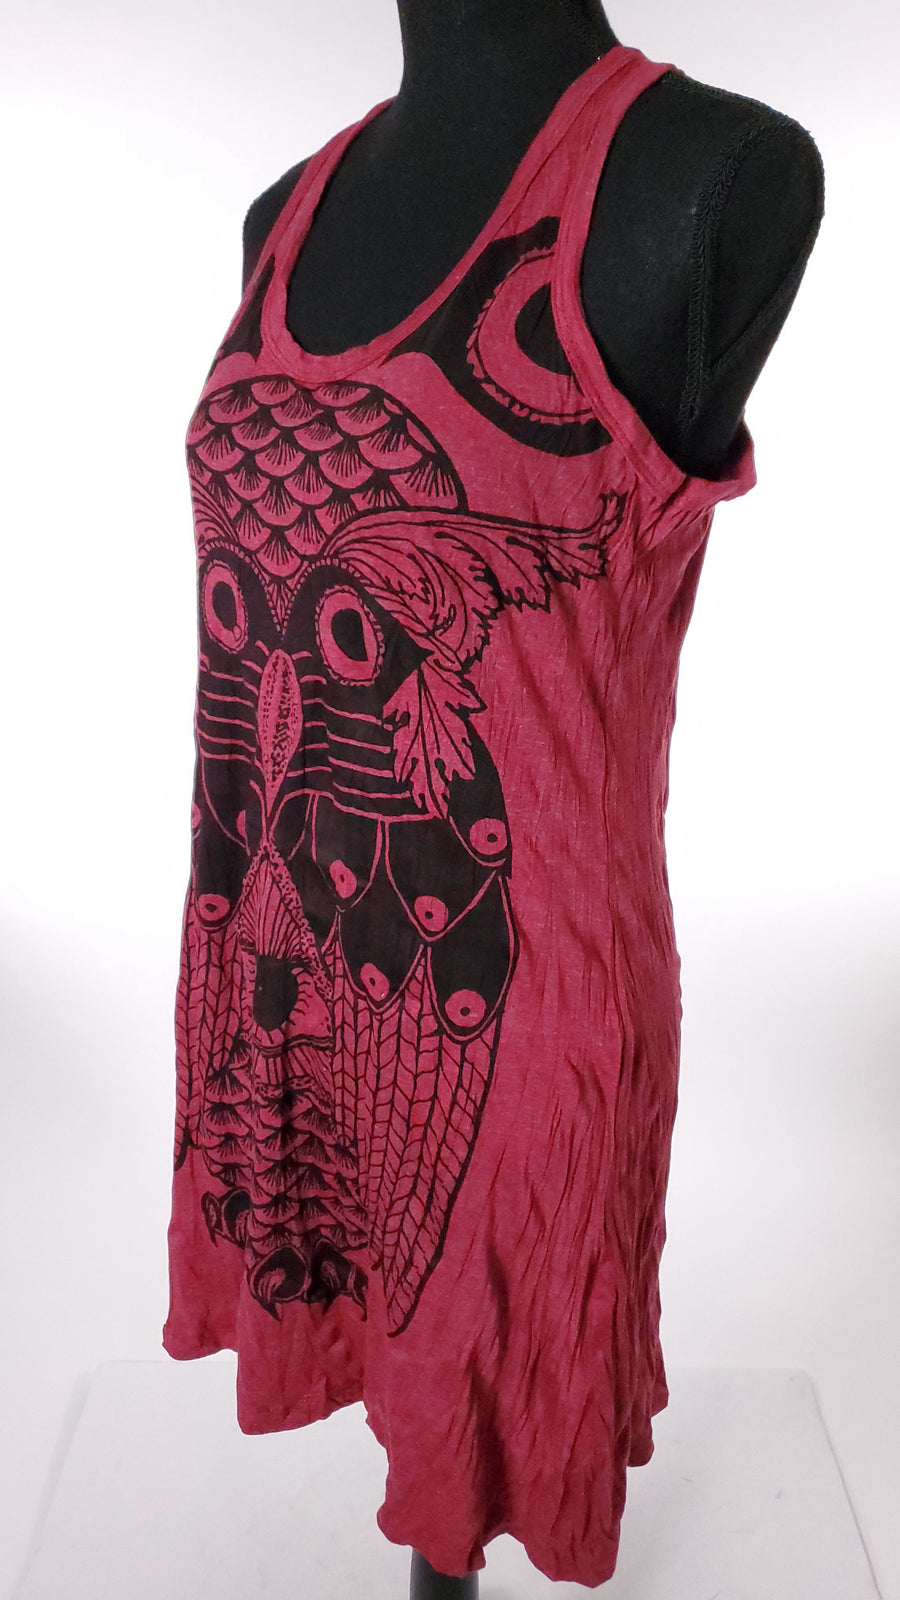 Women's Medium Tank Dress-The High Thai-The High Thai-Yoga Pants-Harem Pants-Hippie Clothing-San Diego